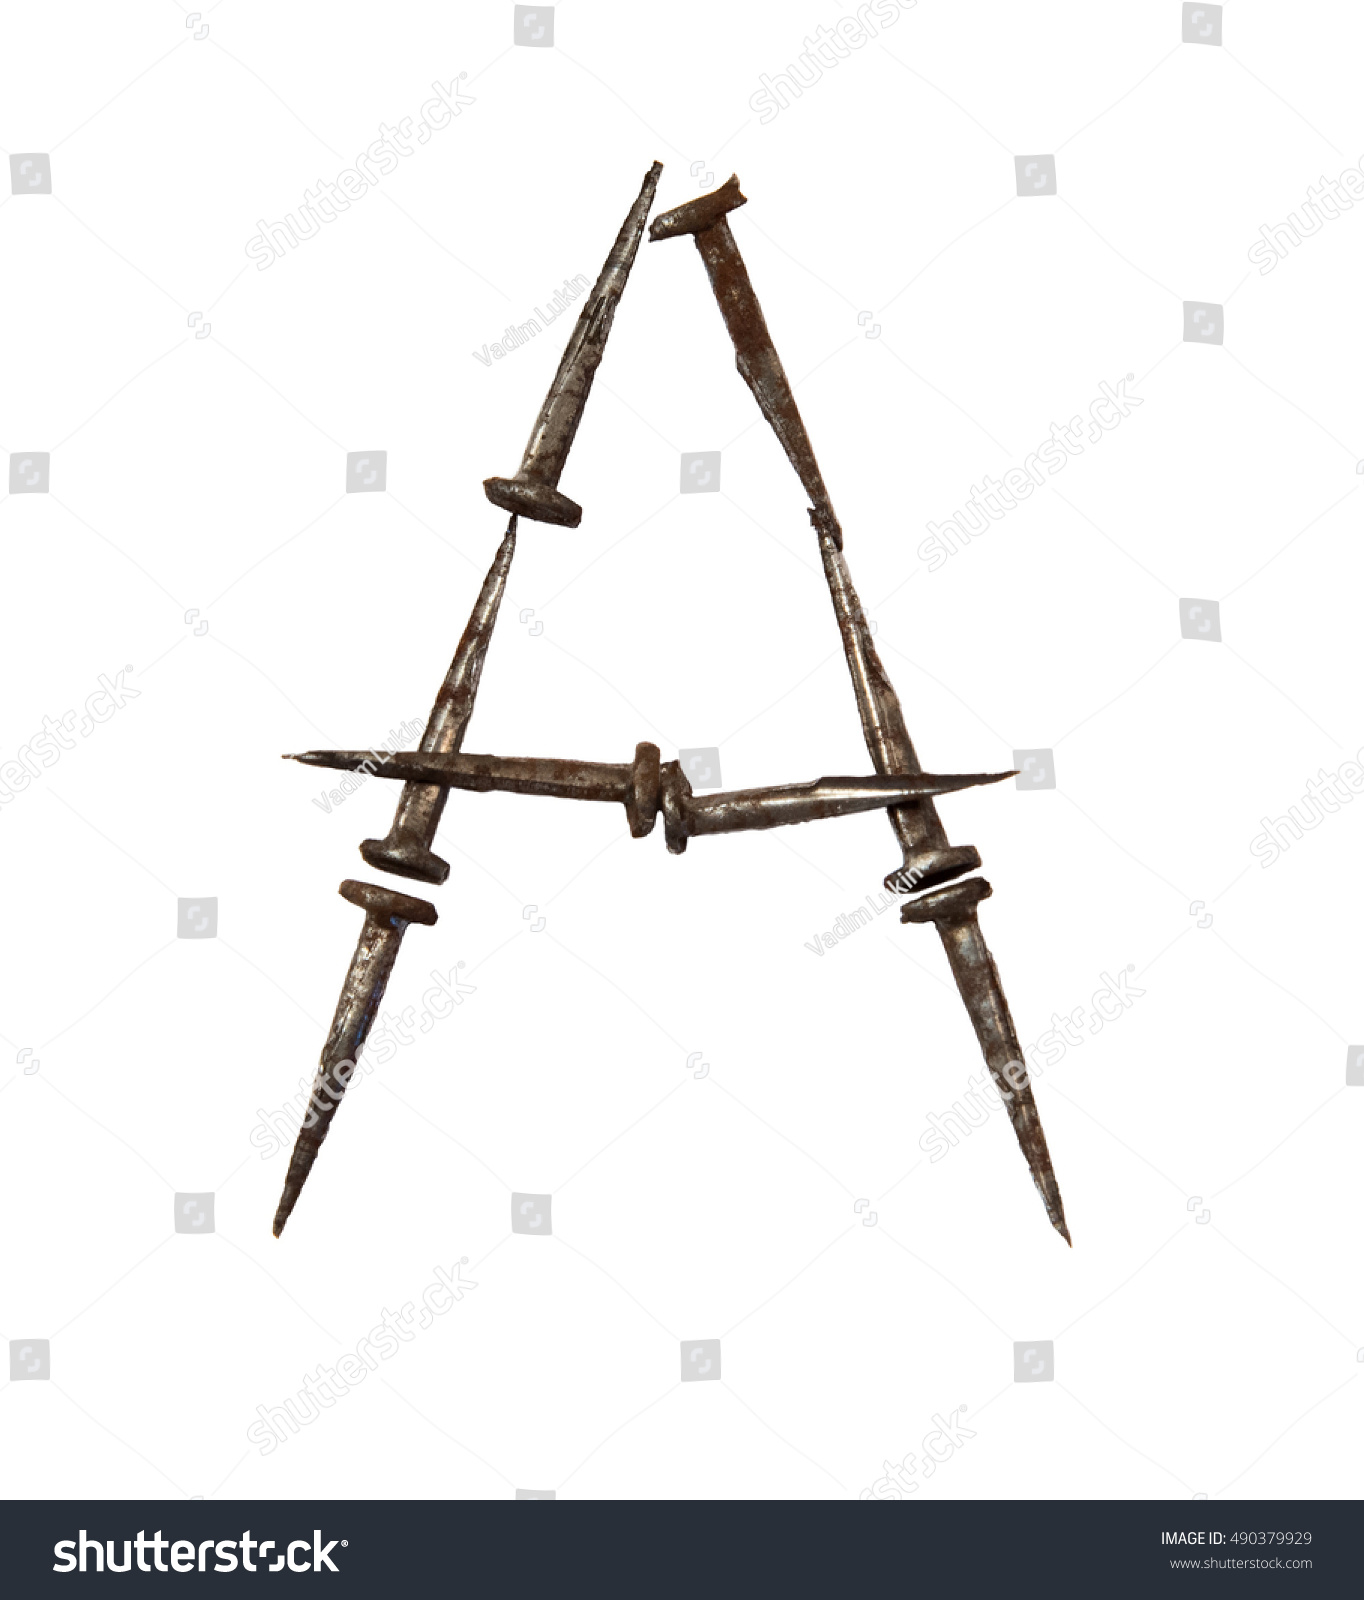 Death nails font symbols made old stock photo 490379929 shutterstock symbols made from old rusty nails isolated on white a biocorpaavc